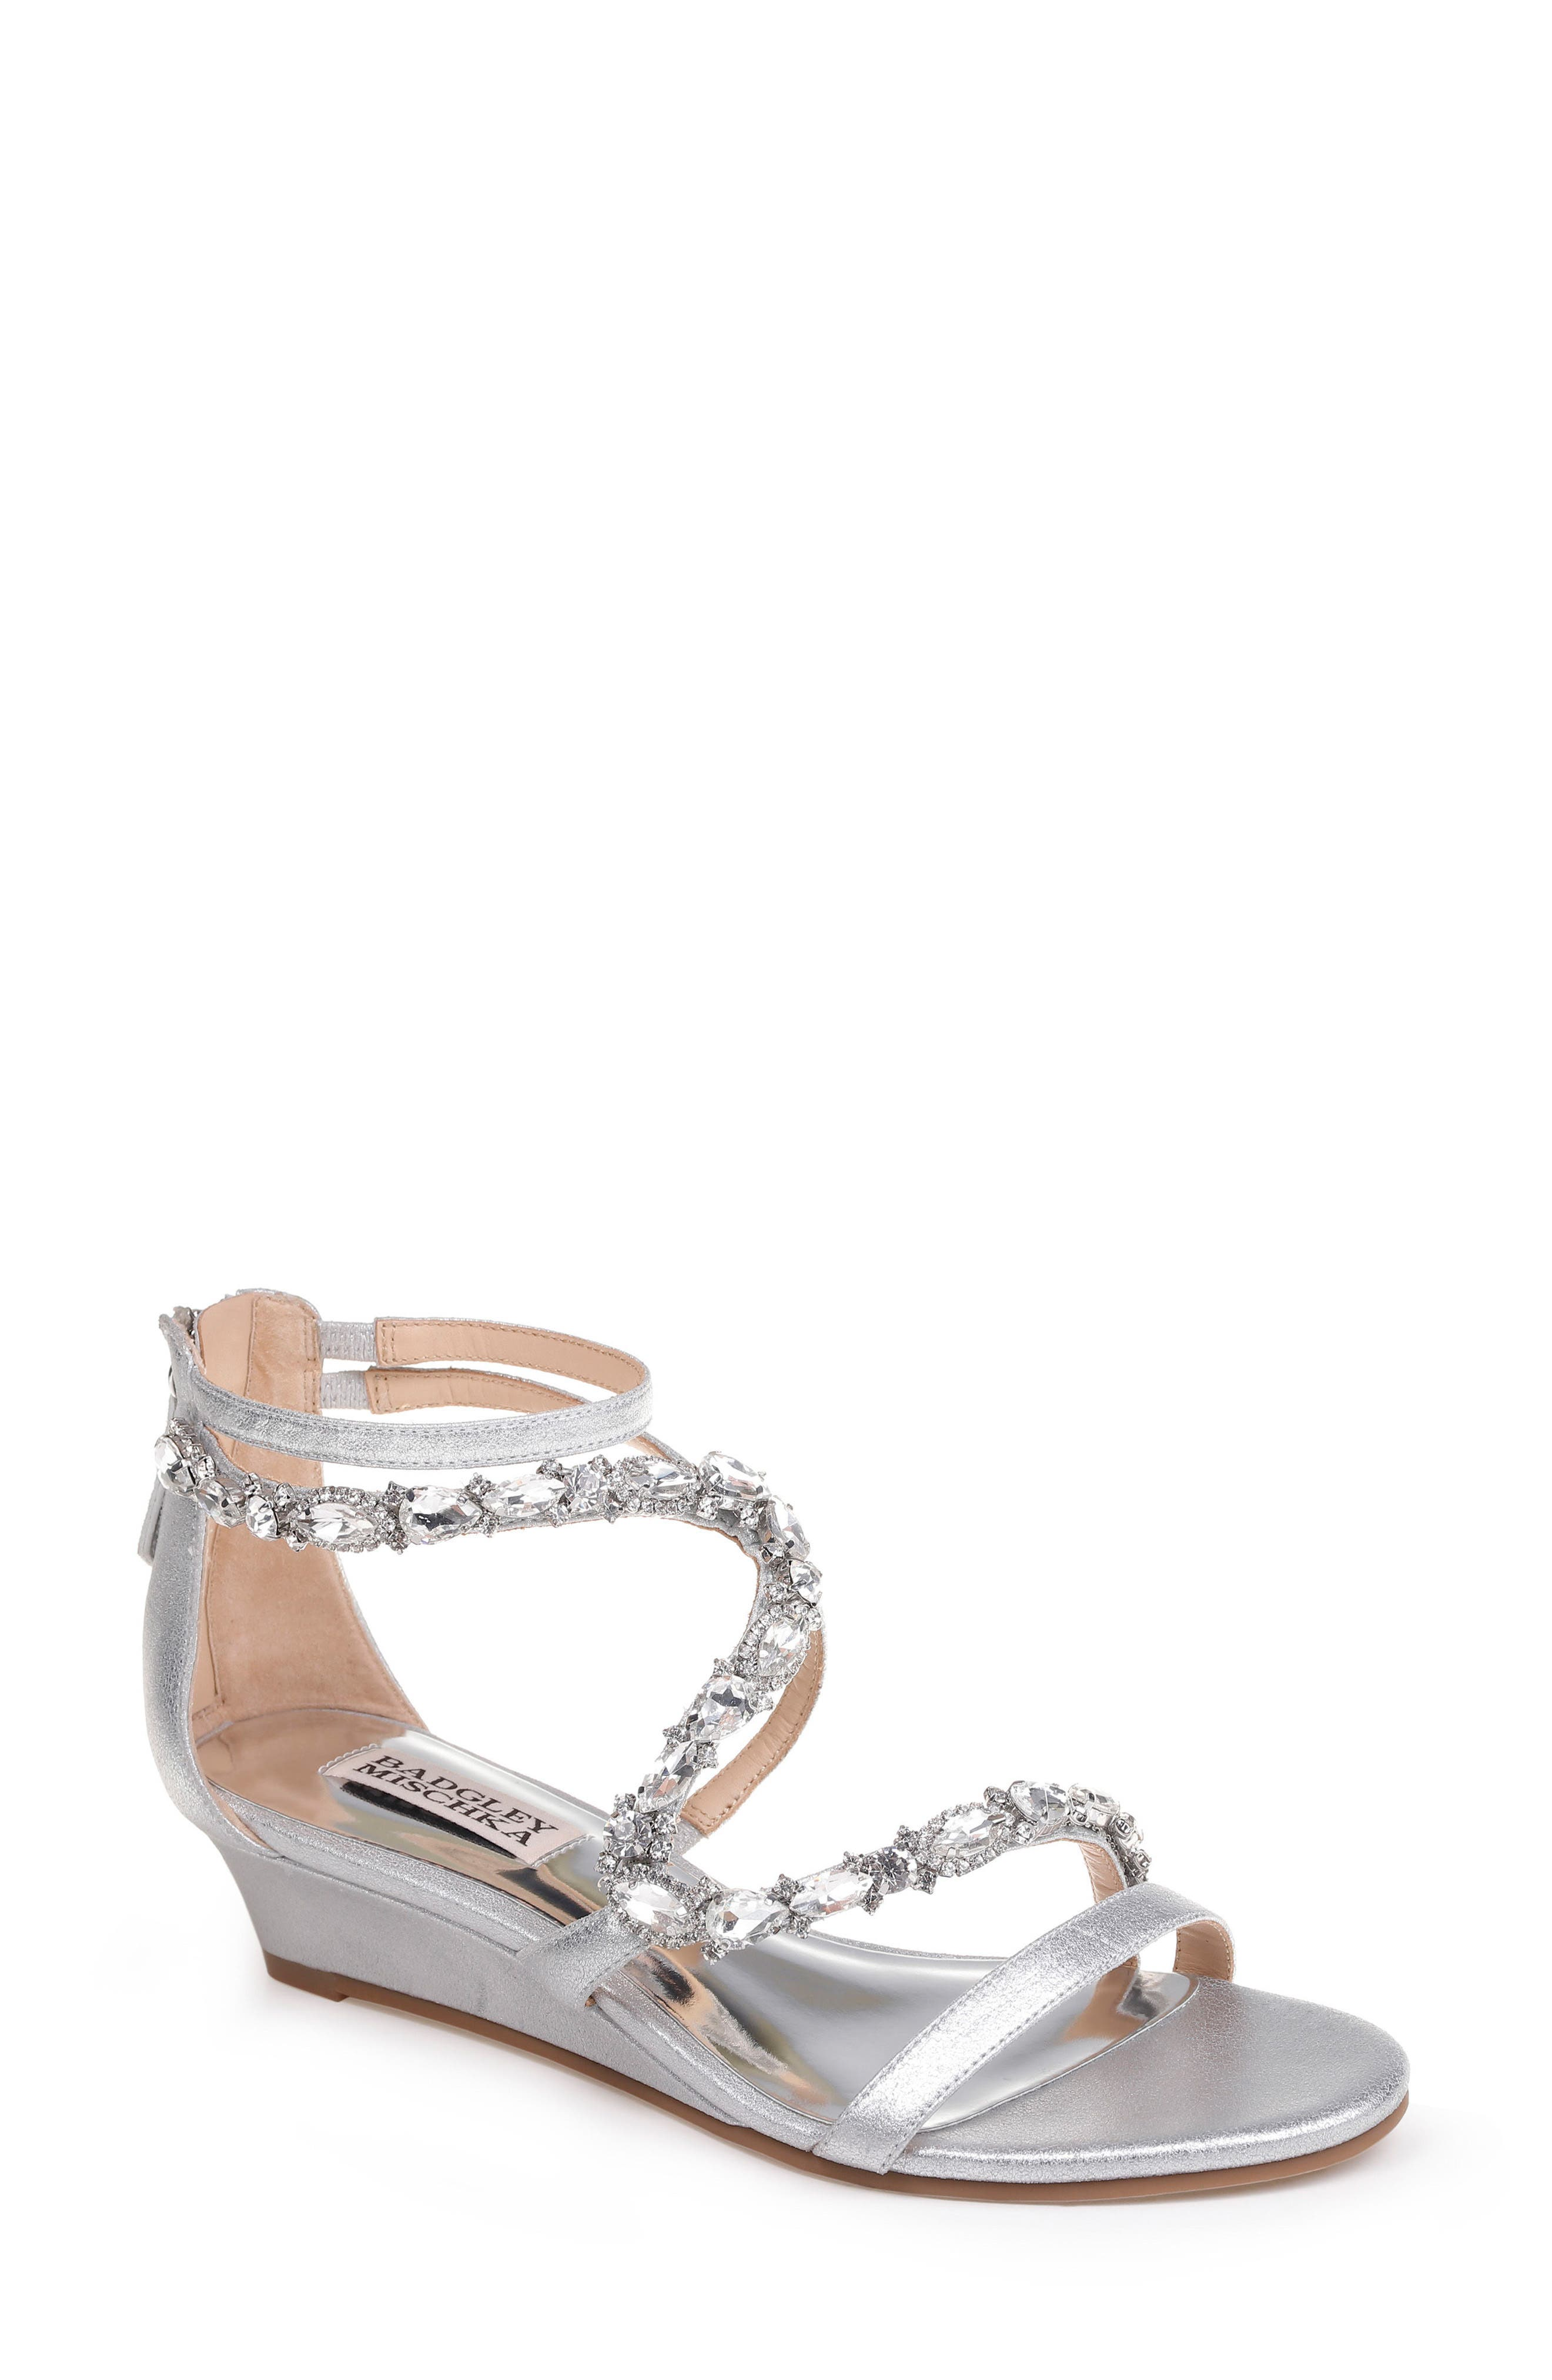 Sierra Strappy Wedge Sandal,                             Main thumbnail 1, color,